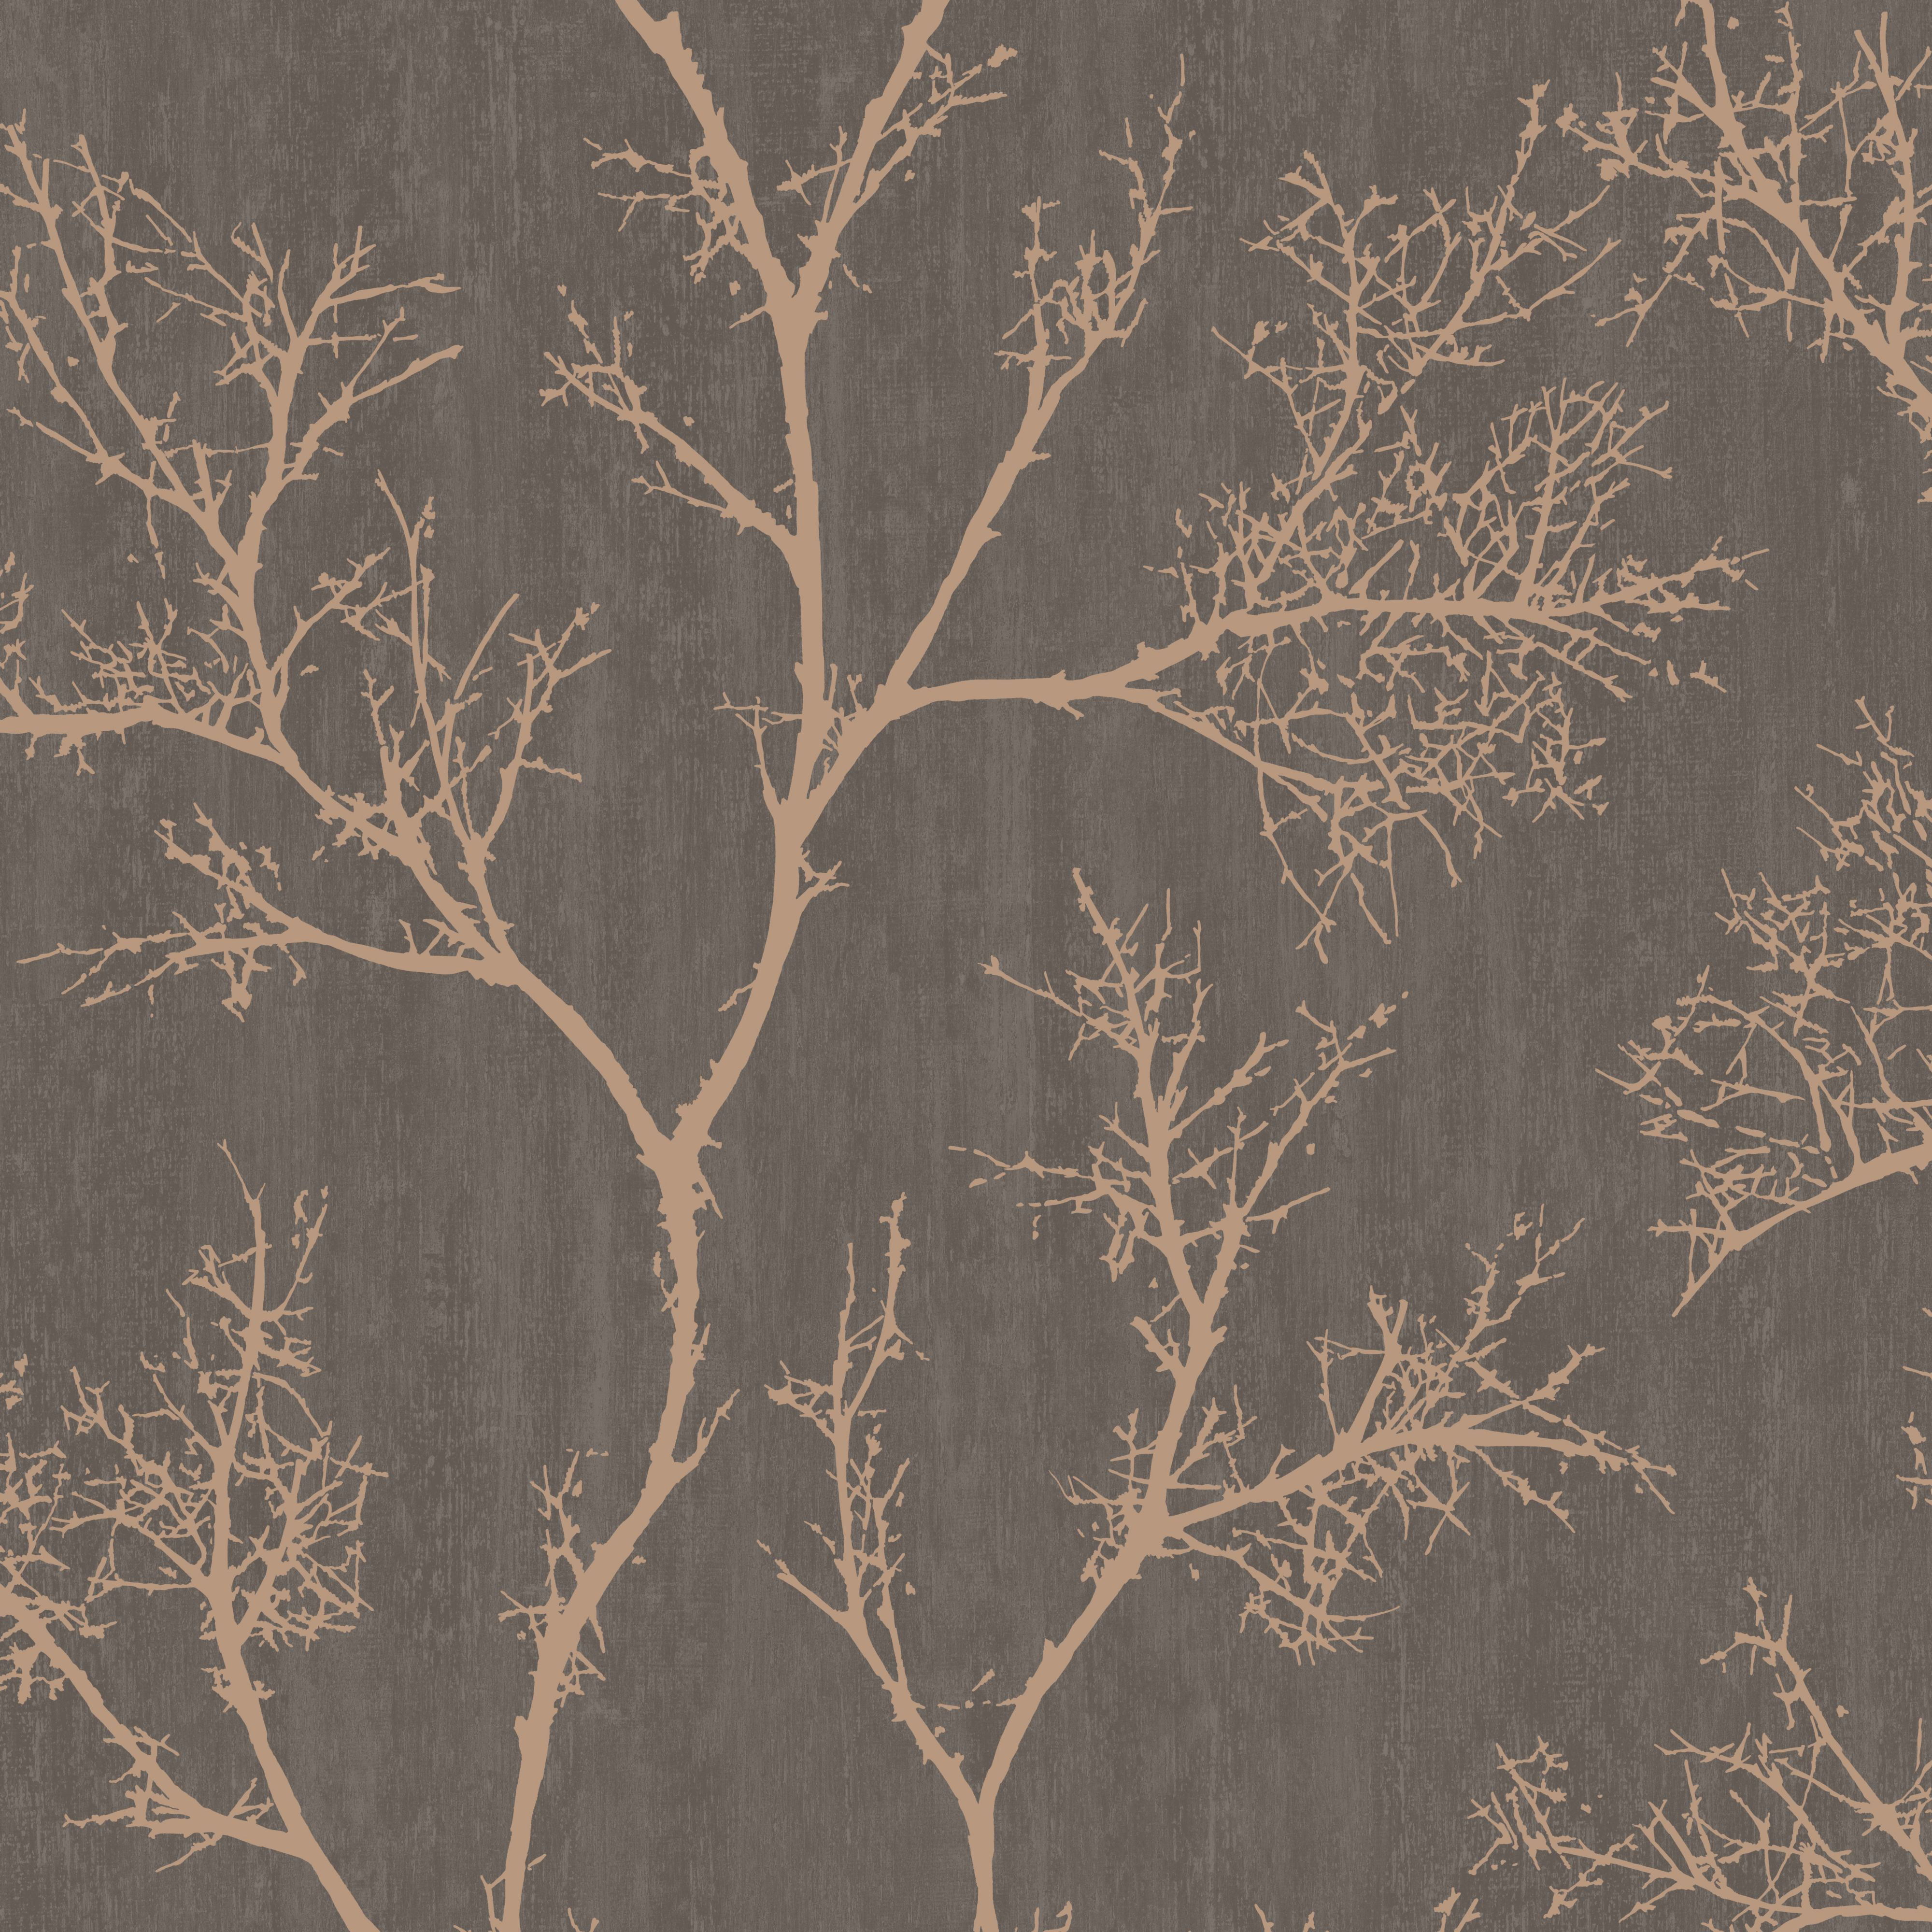 living room wallpaper bq large wall decor ideas for brown gold icy trees departments diy at b q home